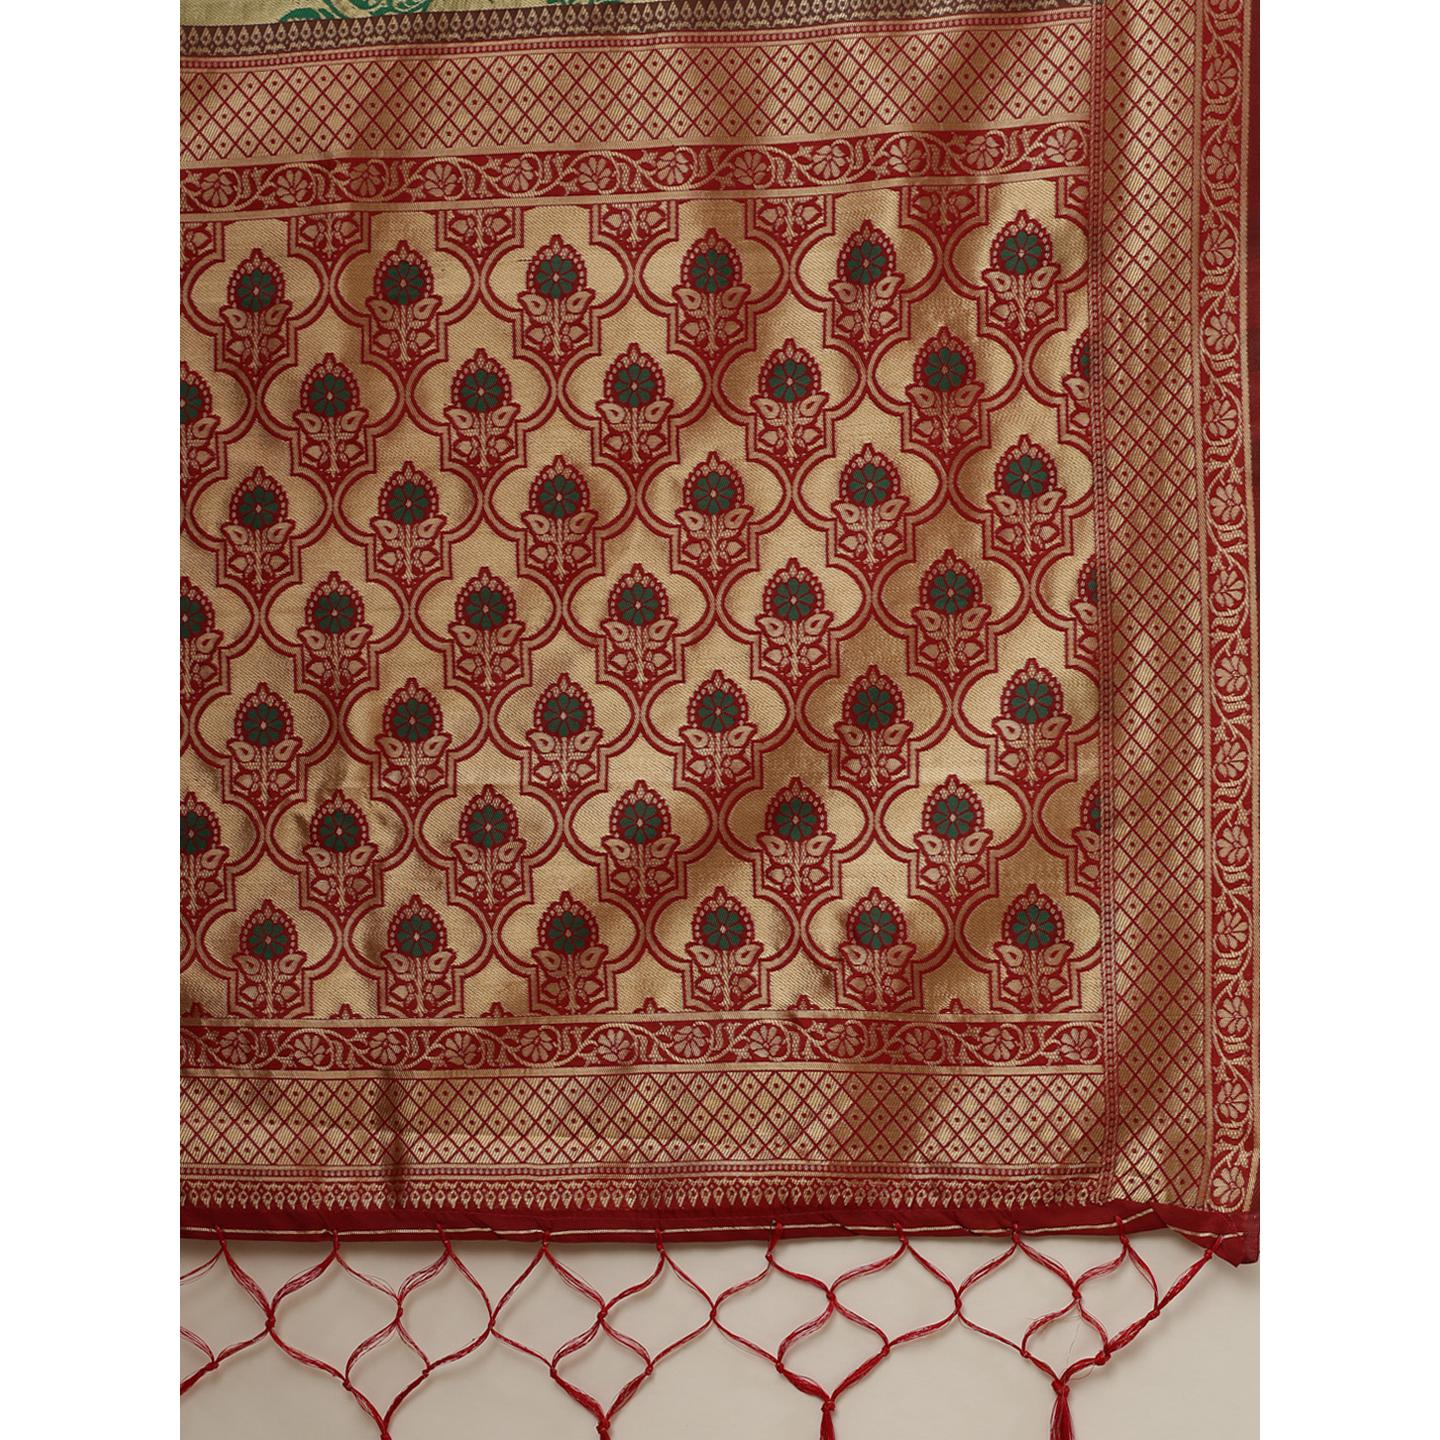 Excellent Gold-Green Colored Festive Wear Woven Silk Belnd Saree With Tassels